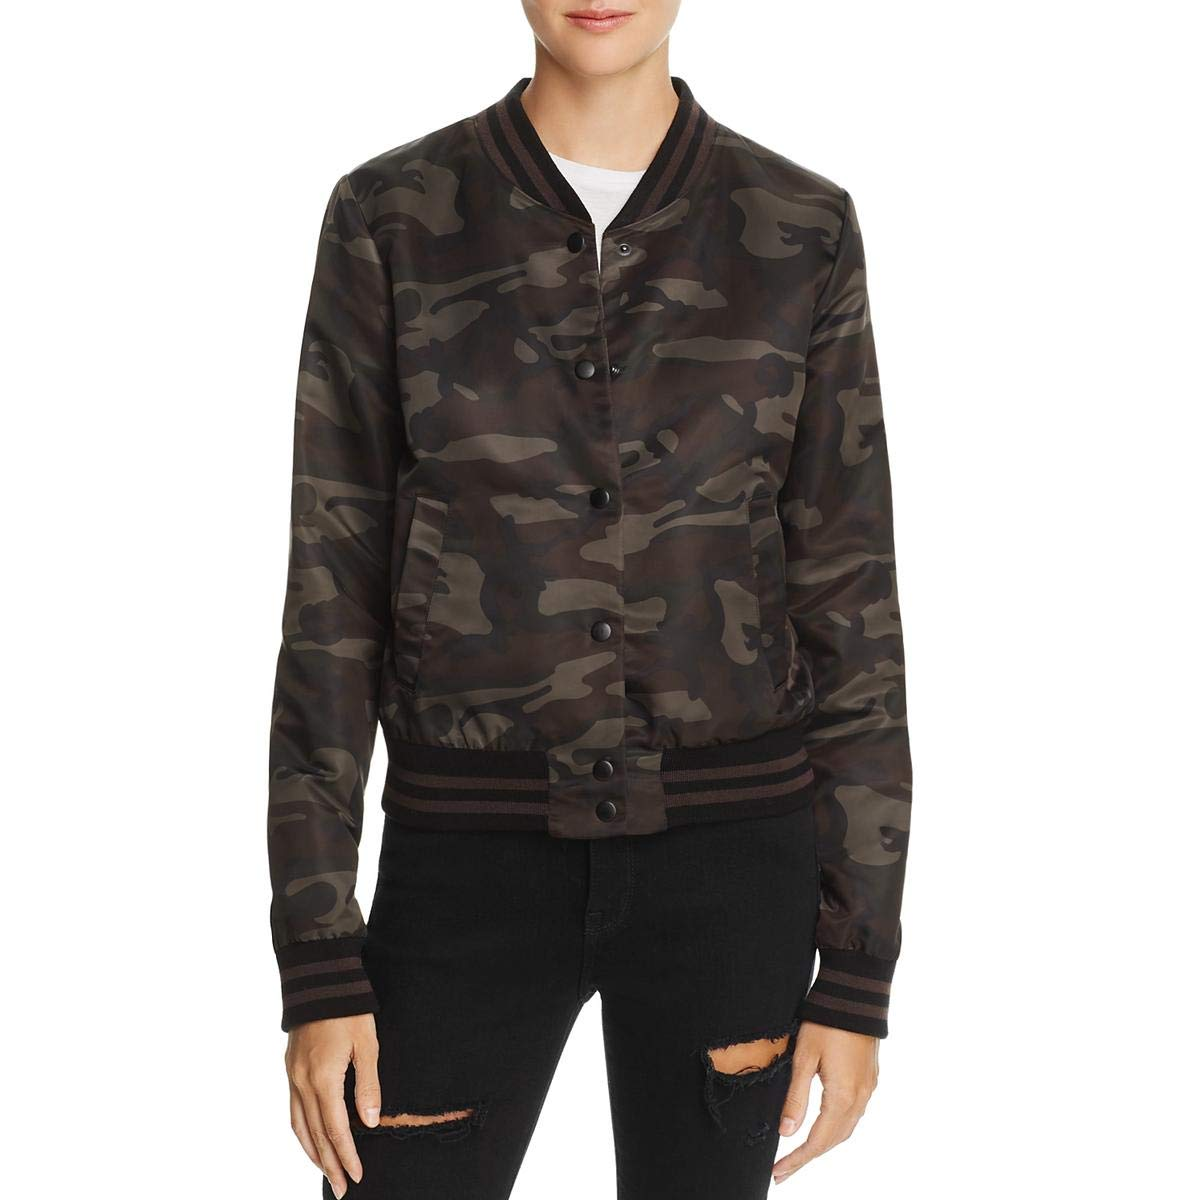 Camo Jungle Bailey 44 Womens Fall Camo Bomber Jacket